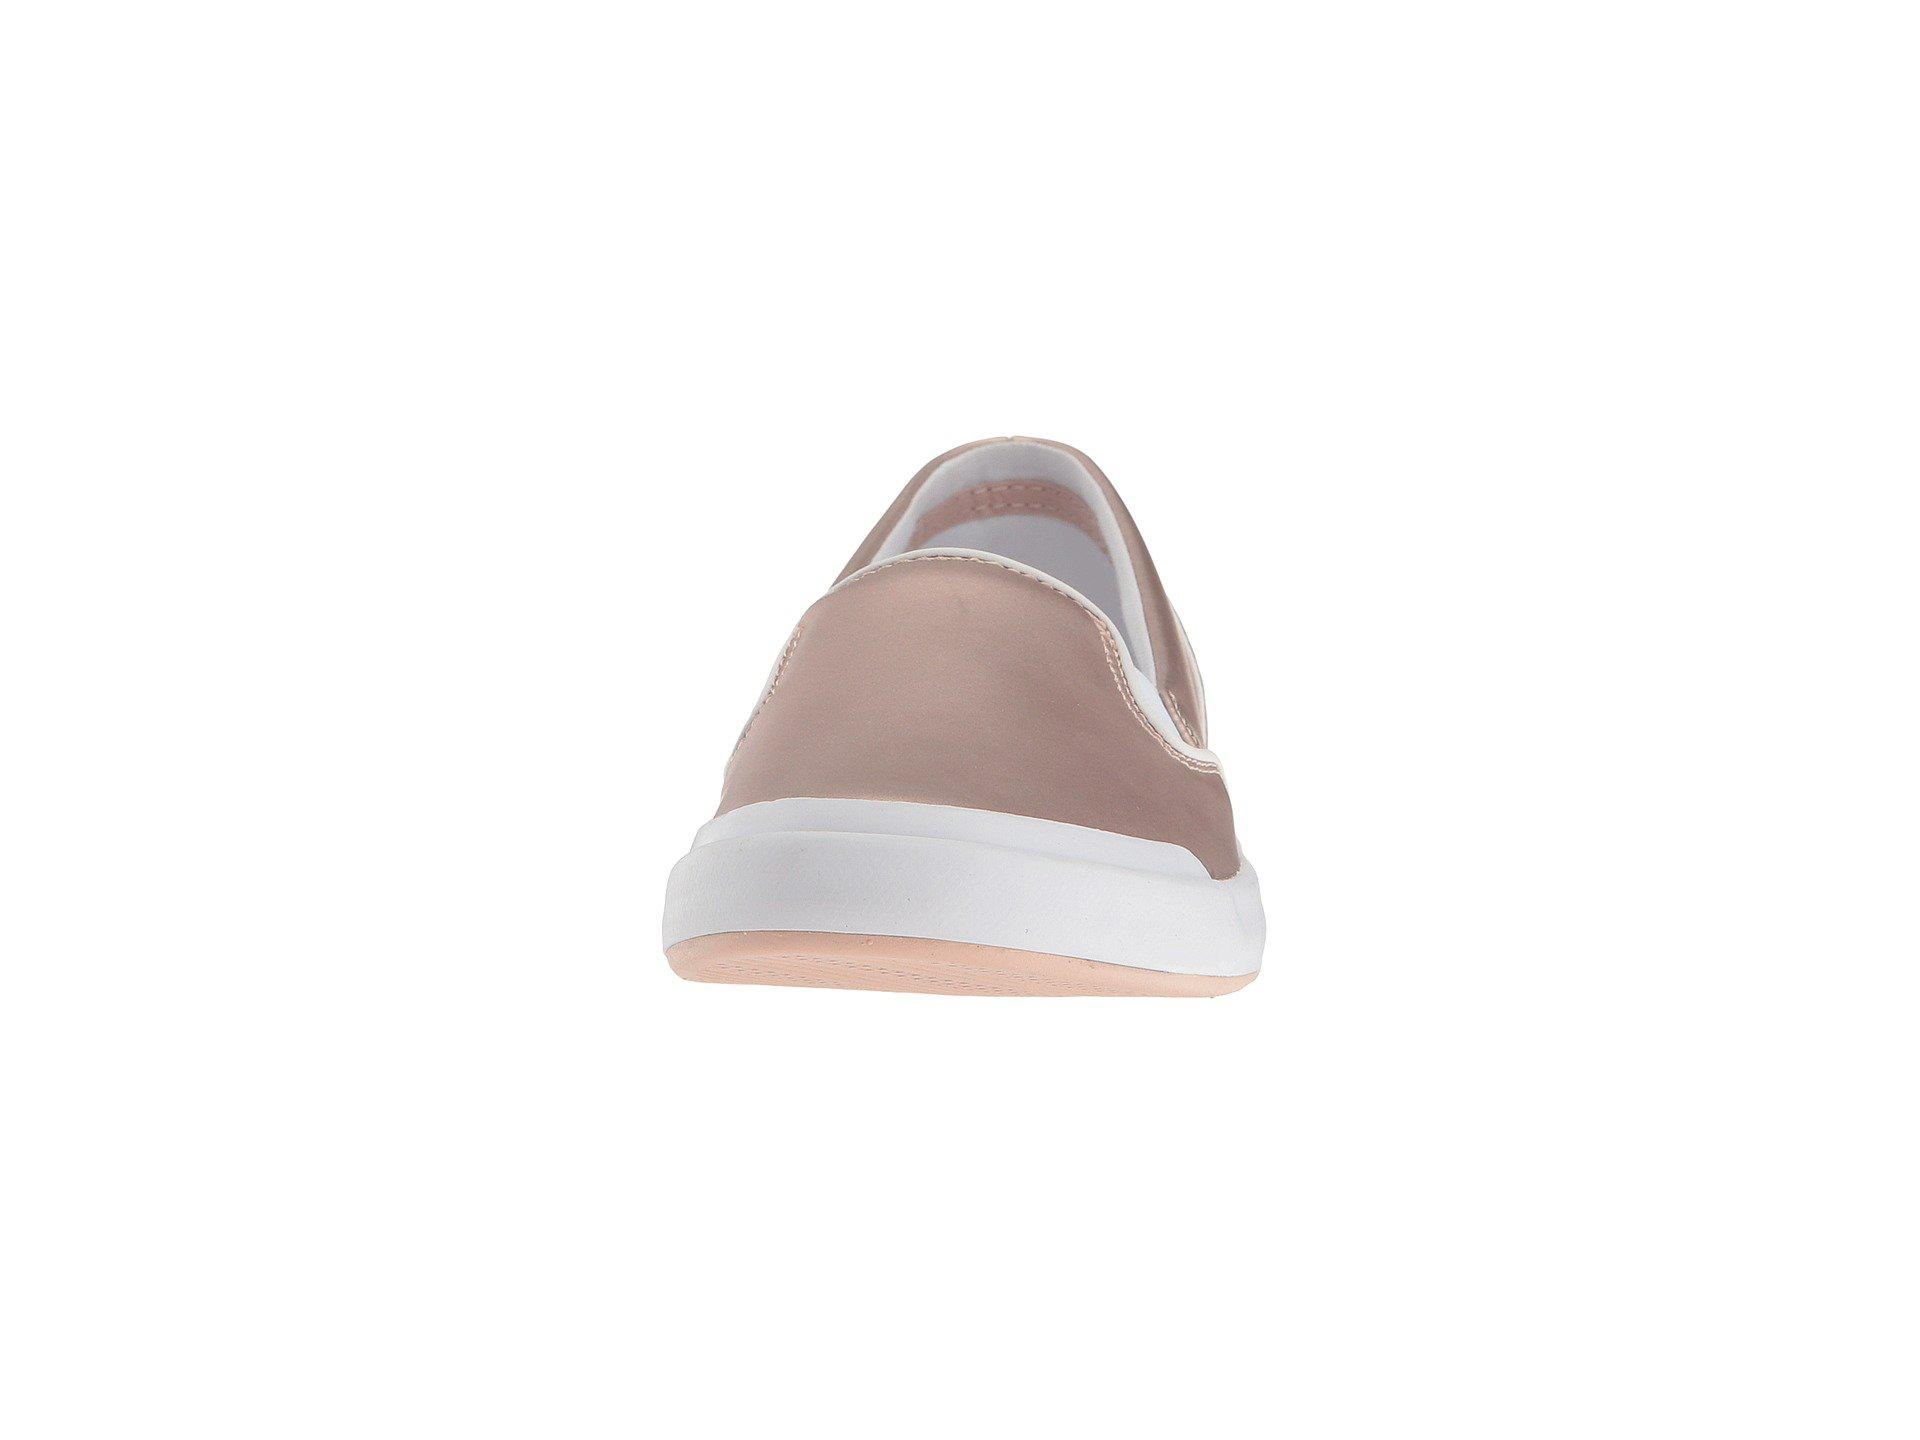 ab4ae9f19fa60 Lyst - Lacoste Lancelle Slip On 117 2 Fashion Sneaker in Pink